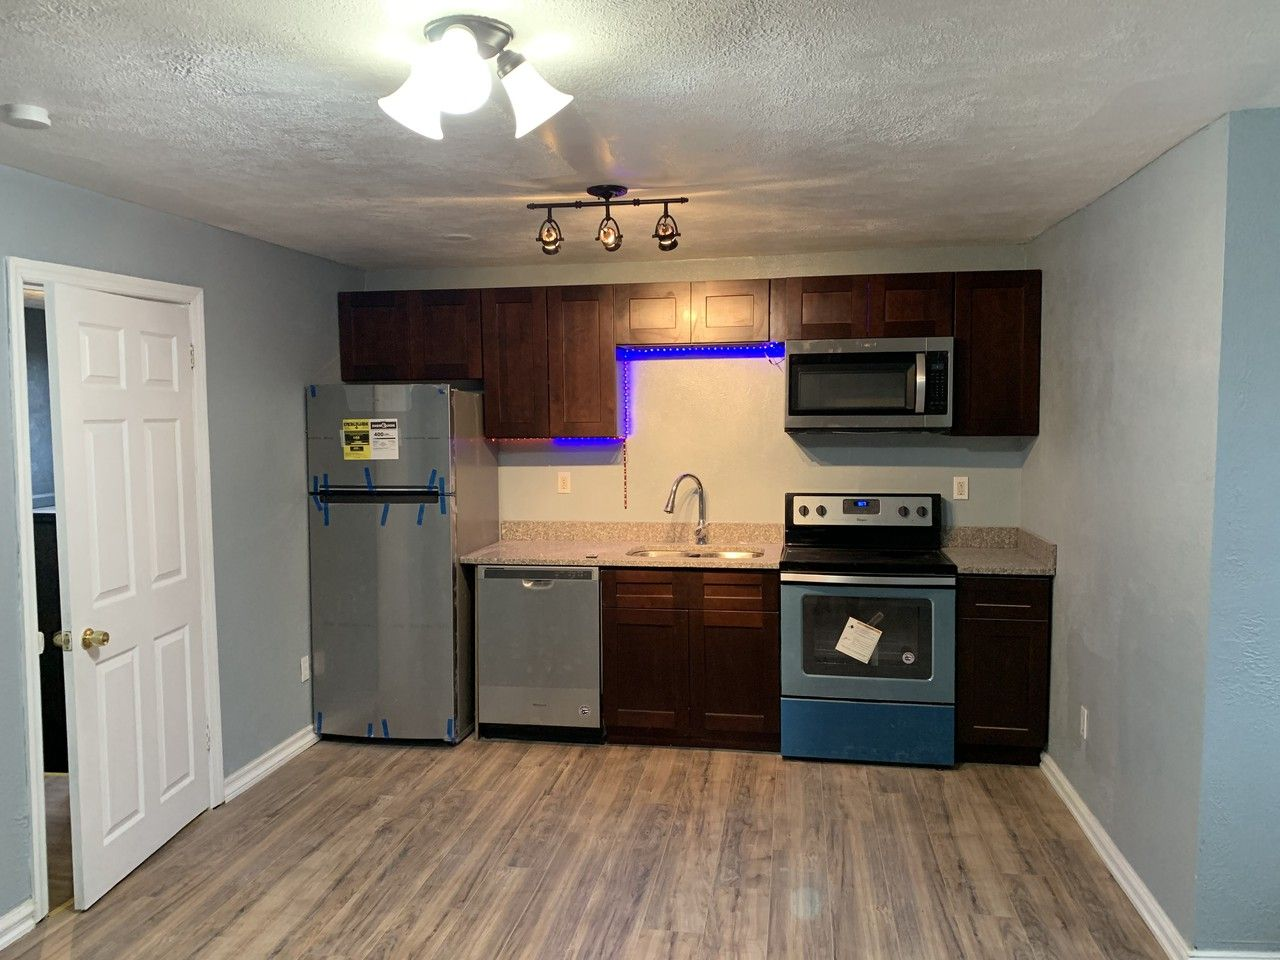 5510 black 3 pittsburgh pa 15206 1 bedroom apartment - One bedroom apartments in pittsburgh ...